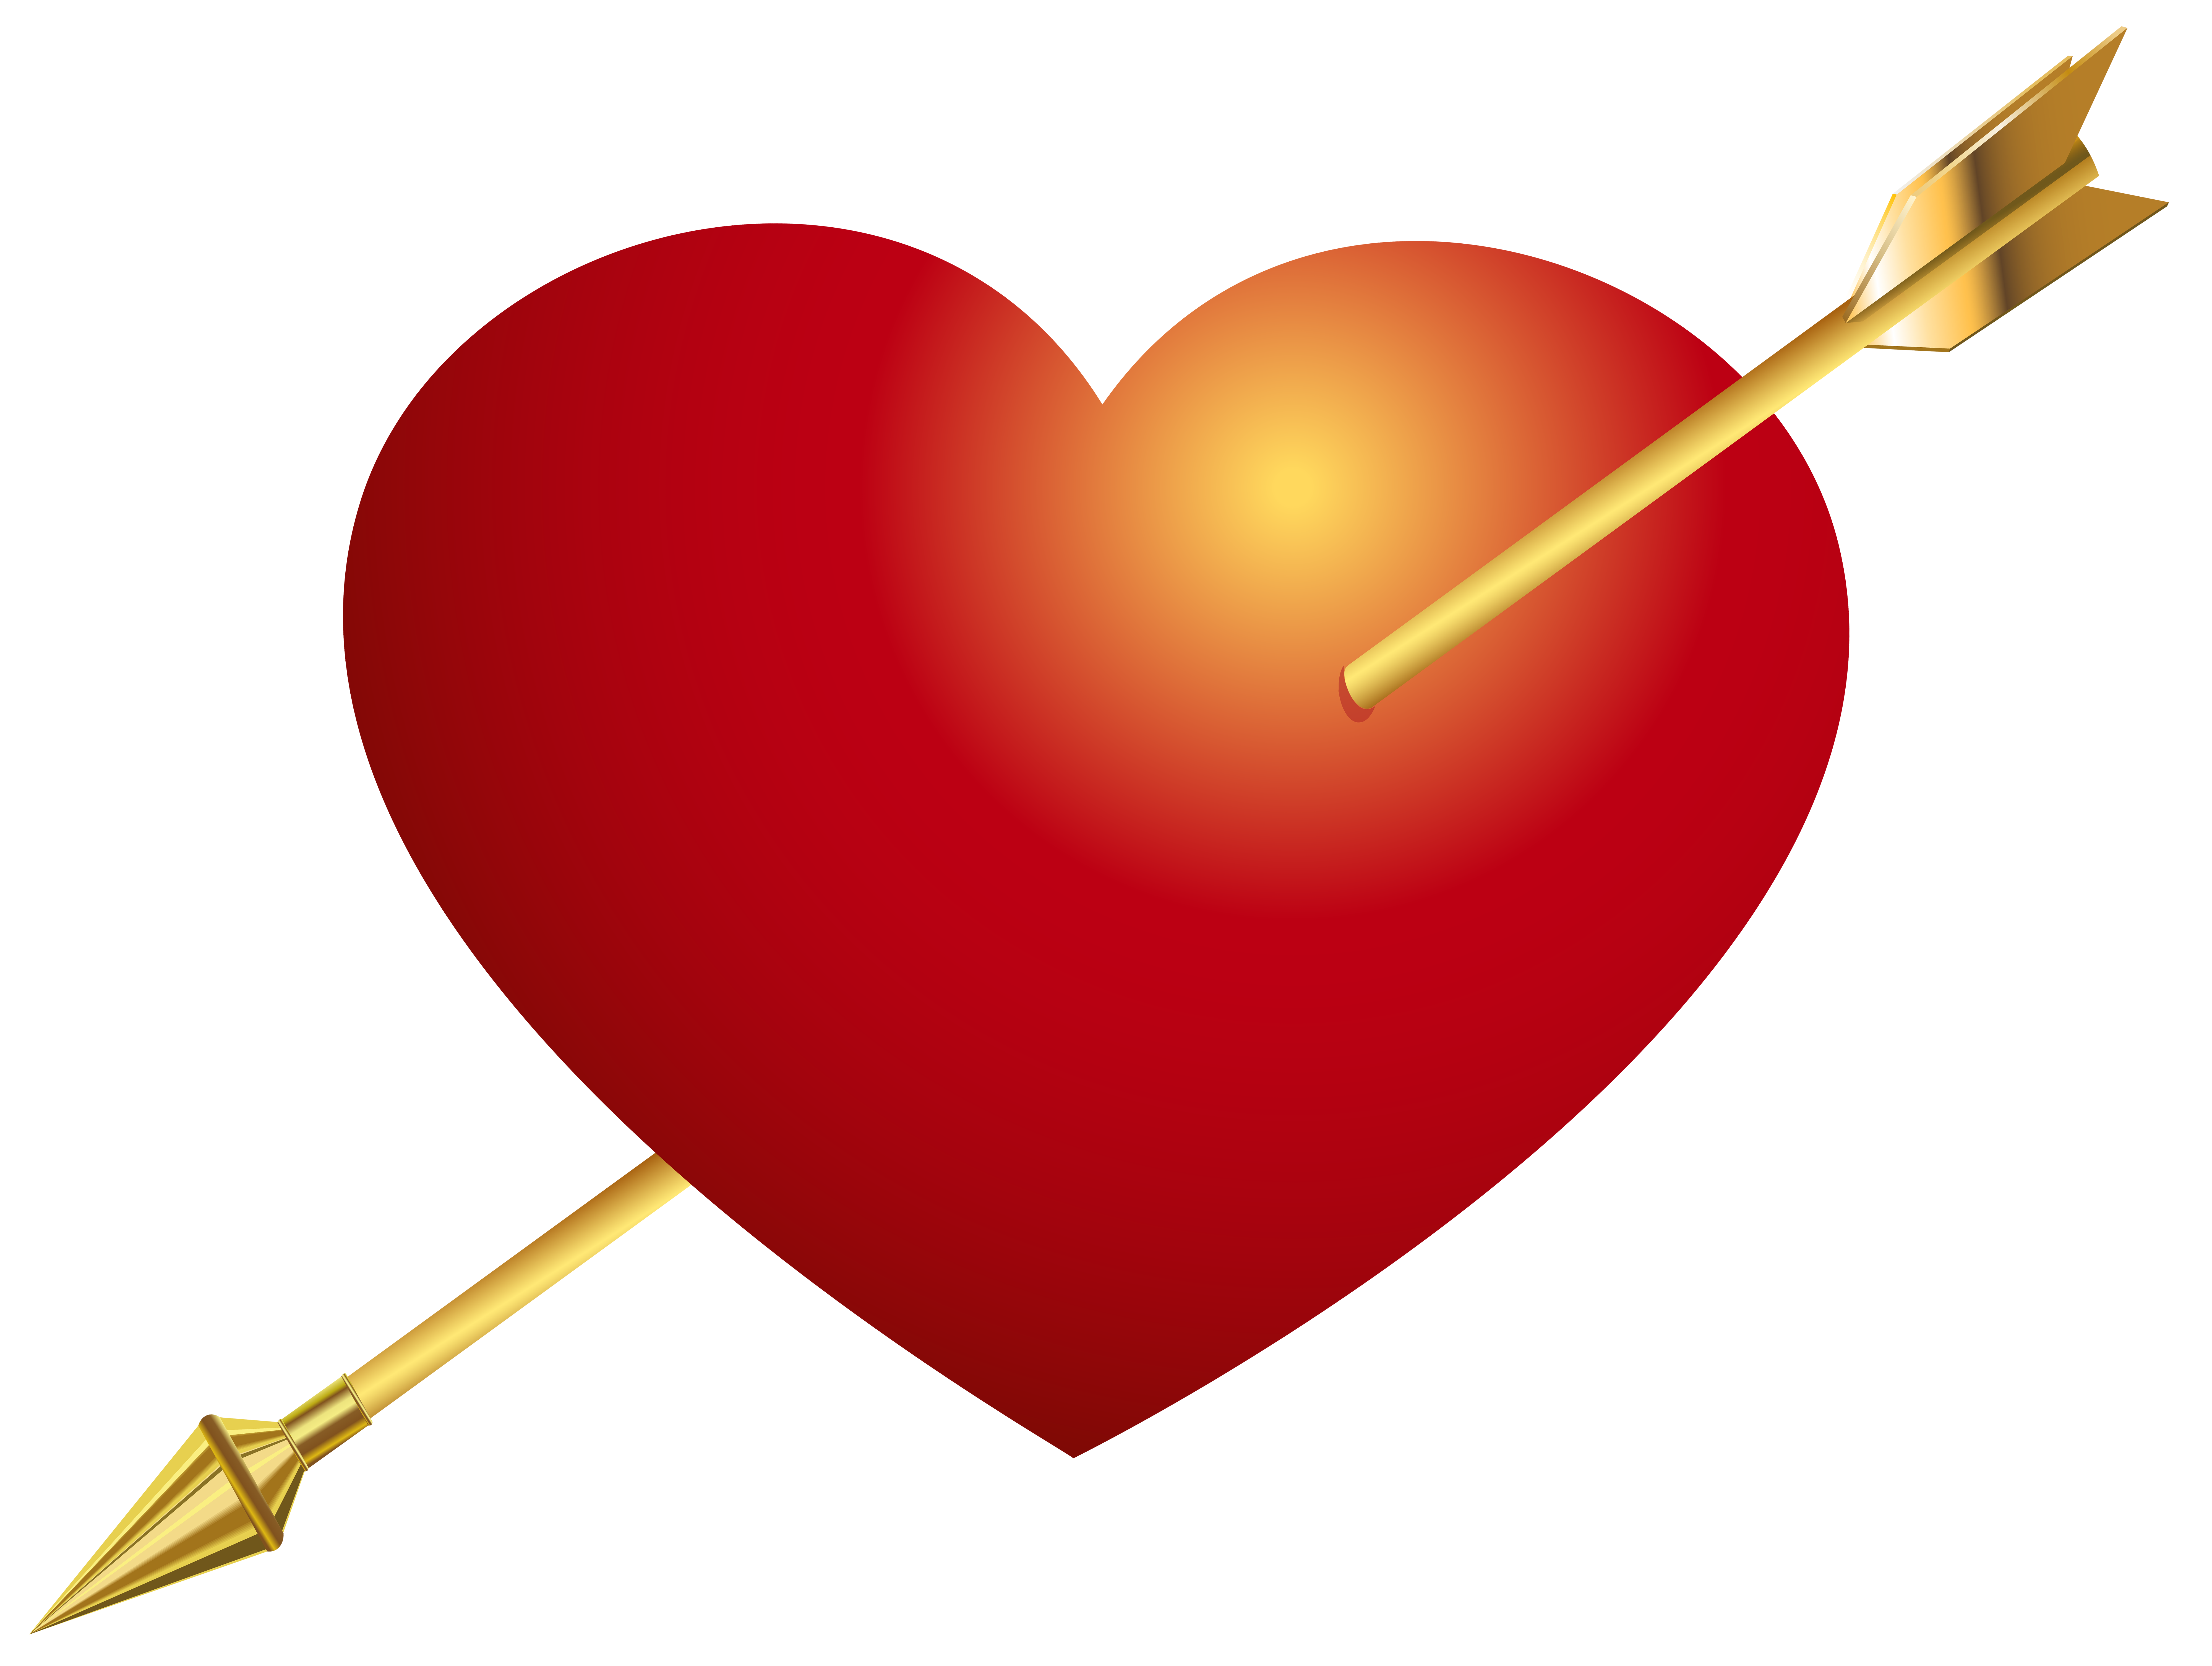 Png red heart. With arrow clip art